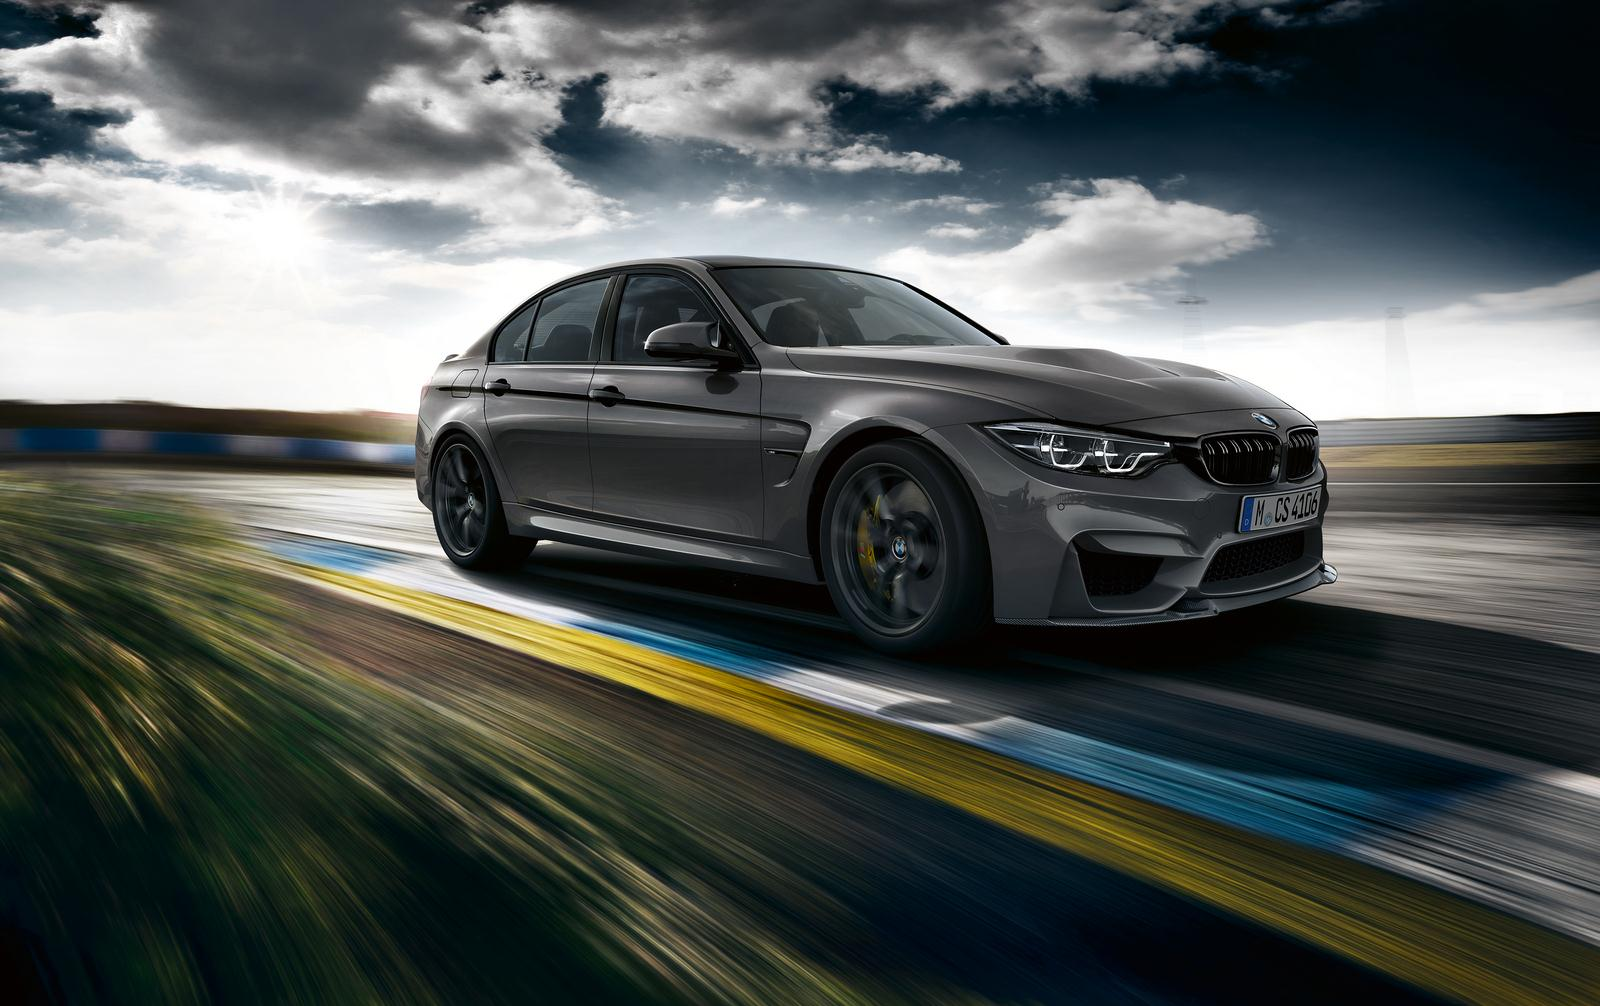 https://www.thrustzone.com/wp-content/uploads/2017/11/The-New-2018-BMW-M3-CS-1.jpg